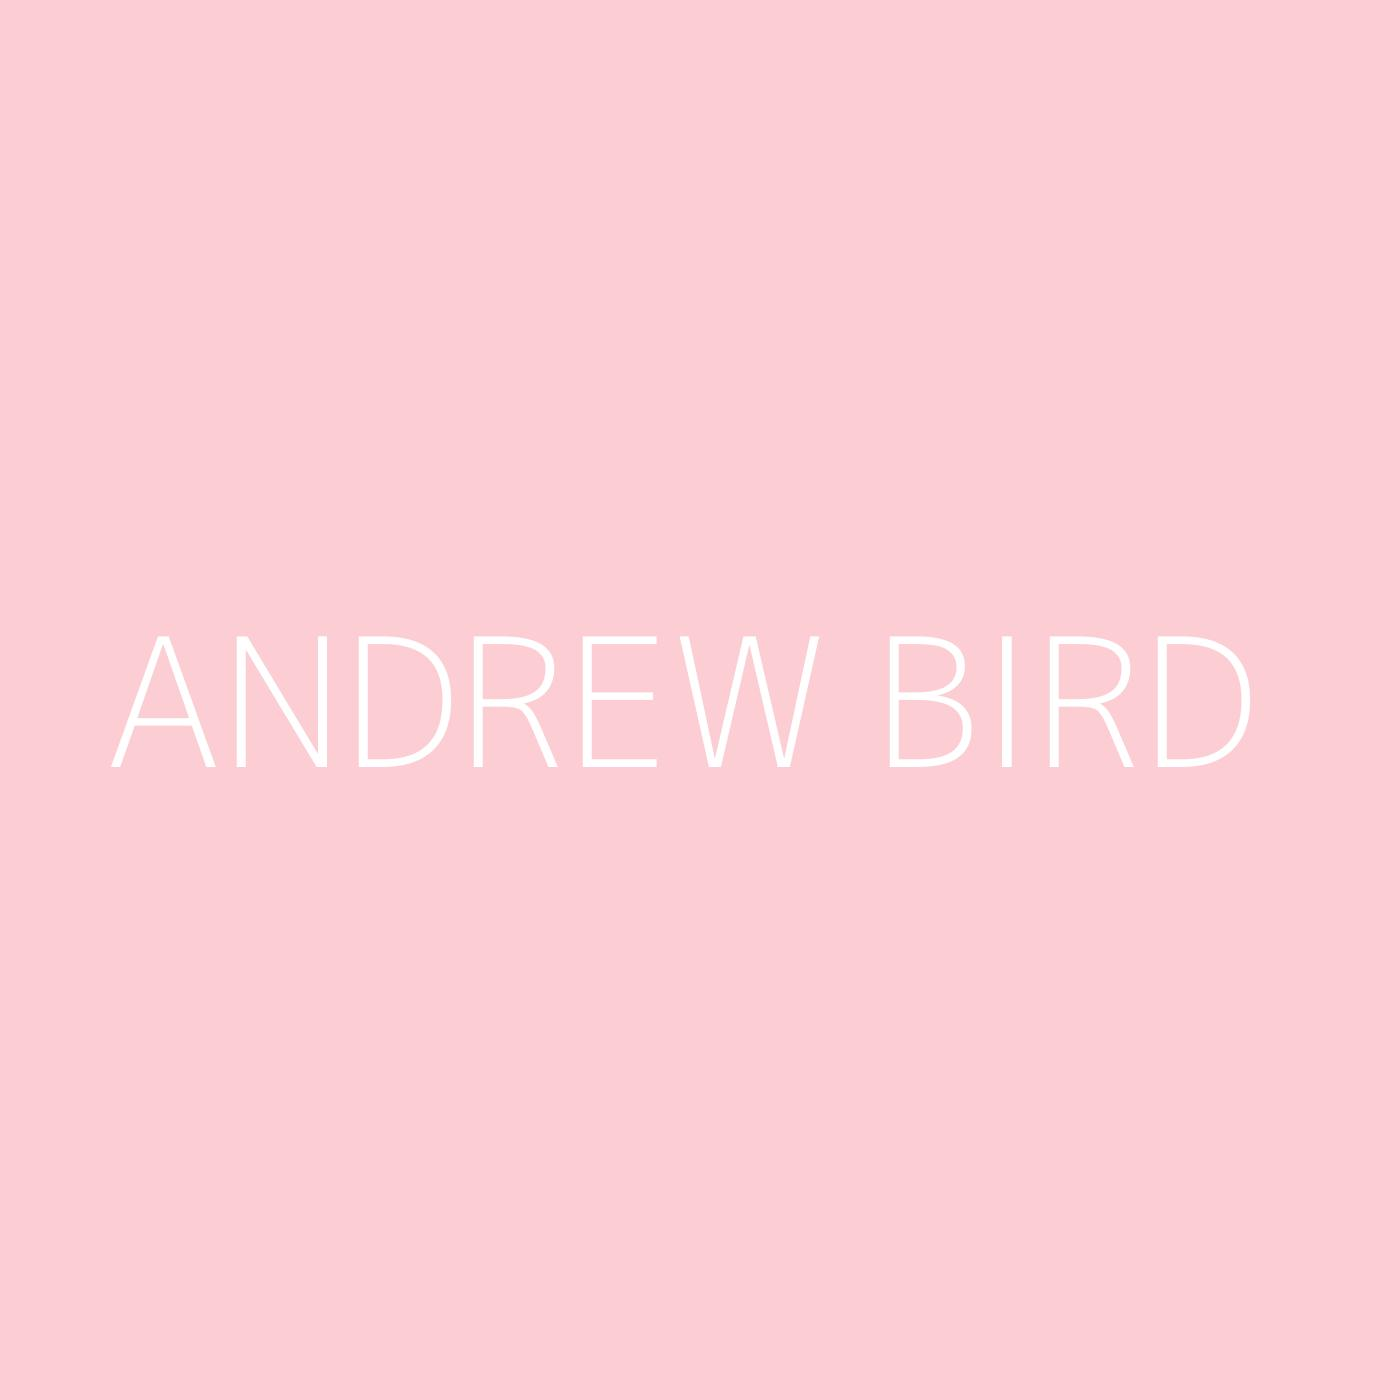 Andrew Bird Playlist Artwork